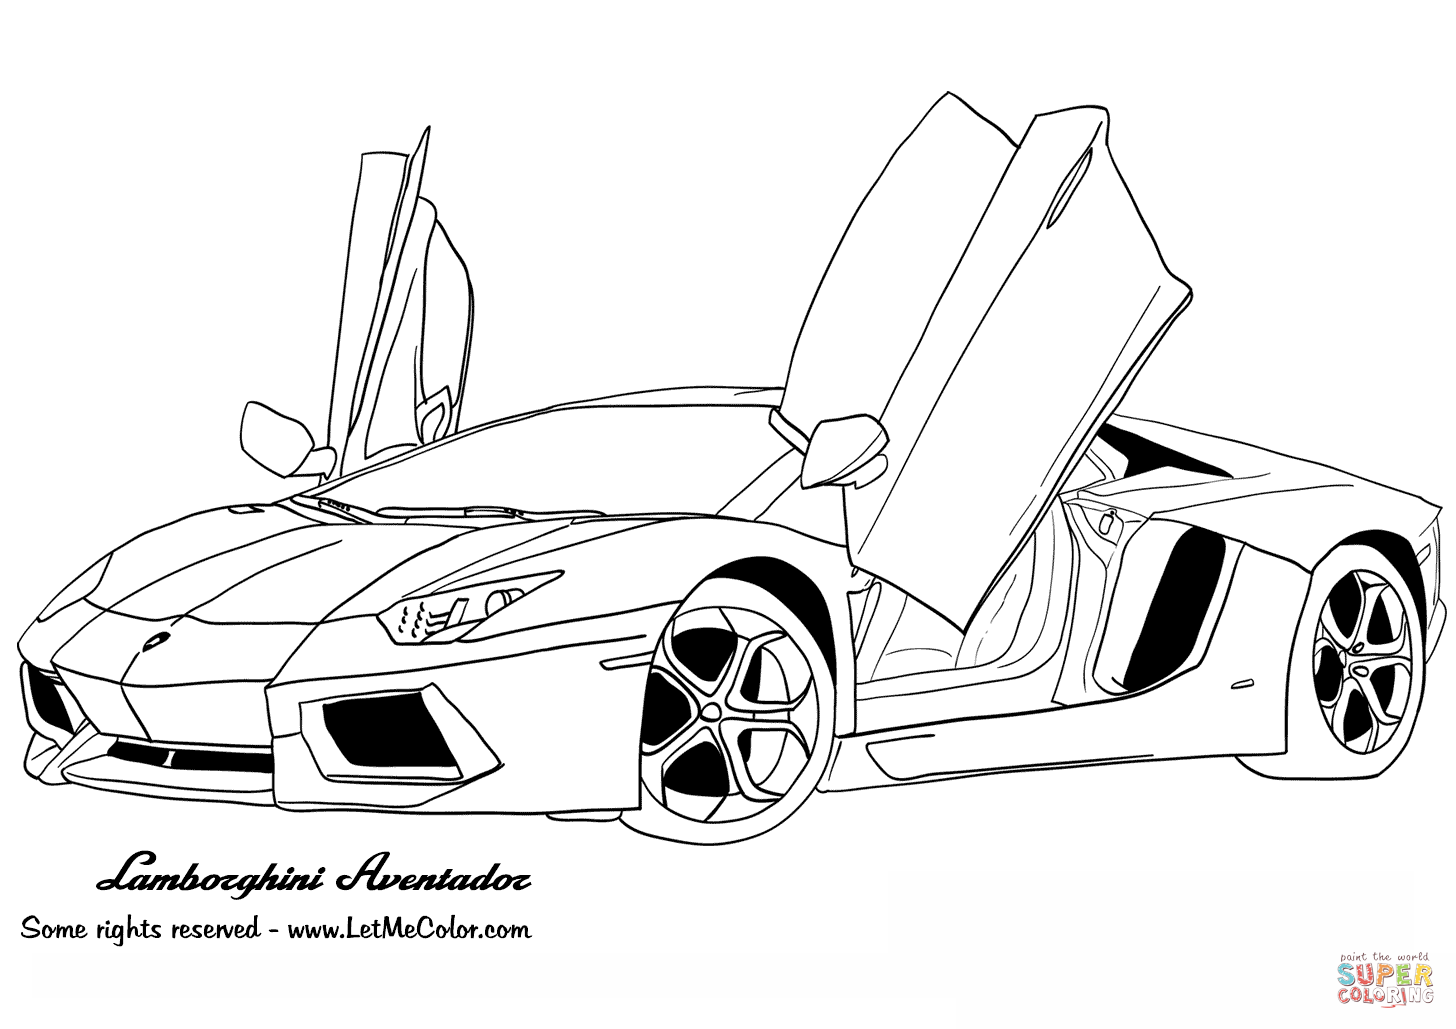 Lamborghini Aventador Coloring Page Free Printable Coloring Pages